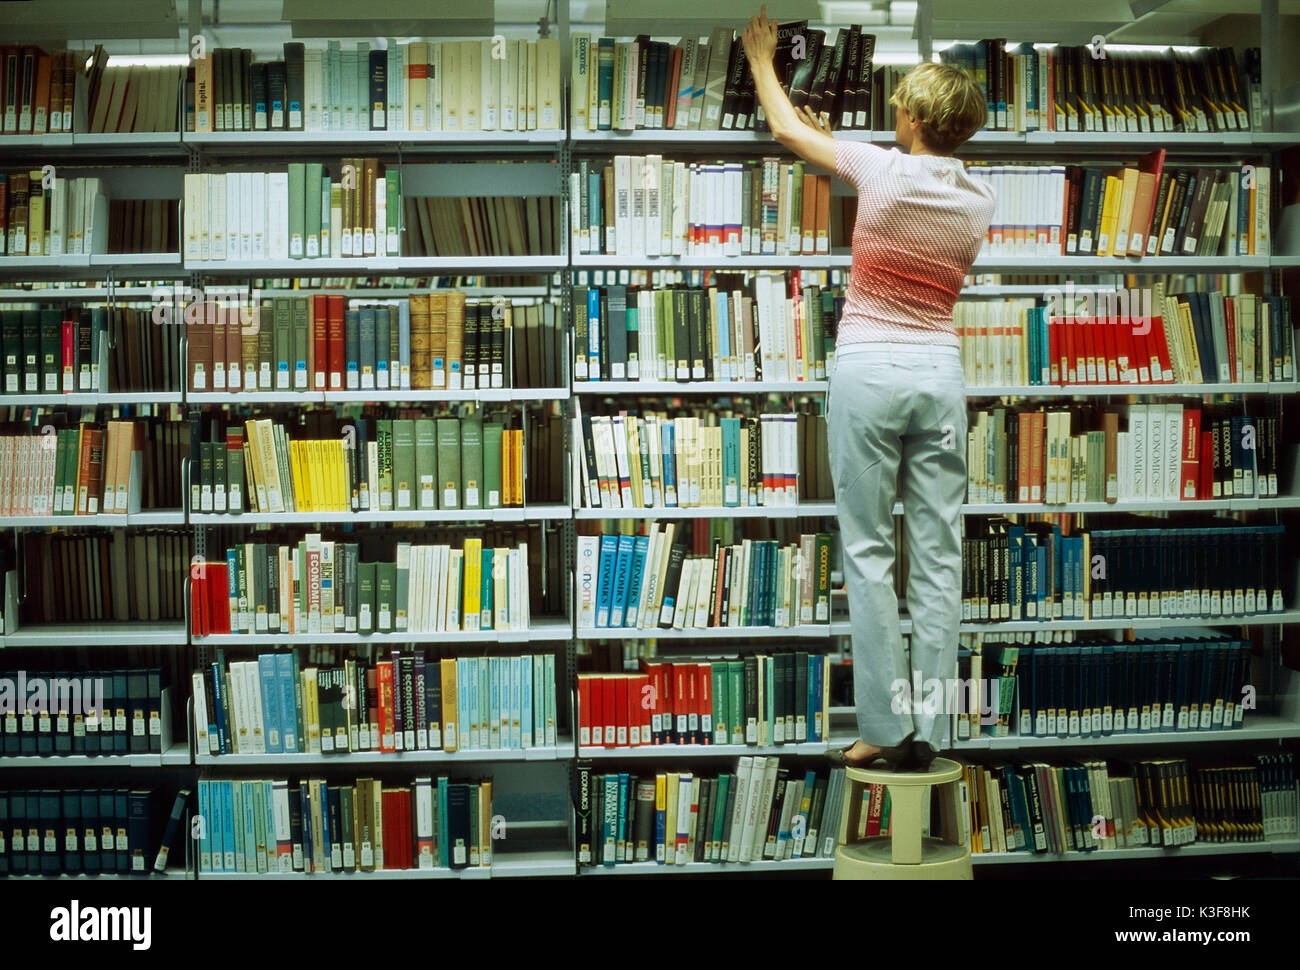 Woman searches book at the bookshelf of a library - Stock Image